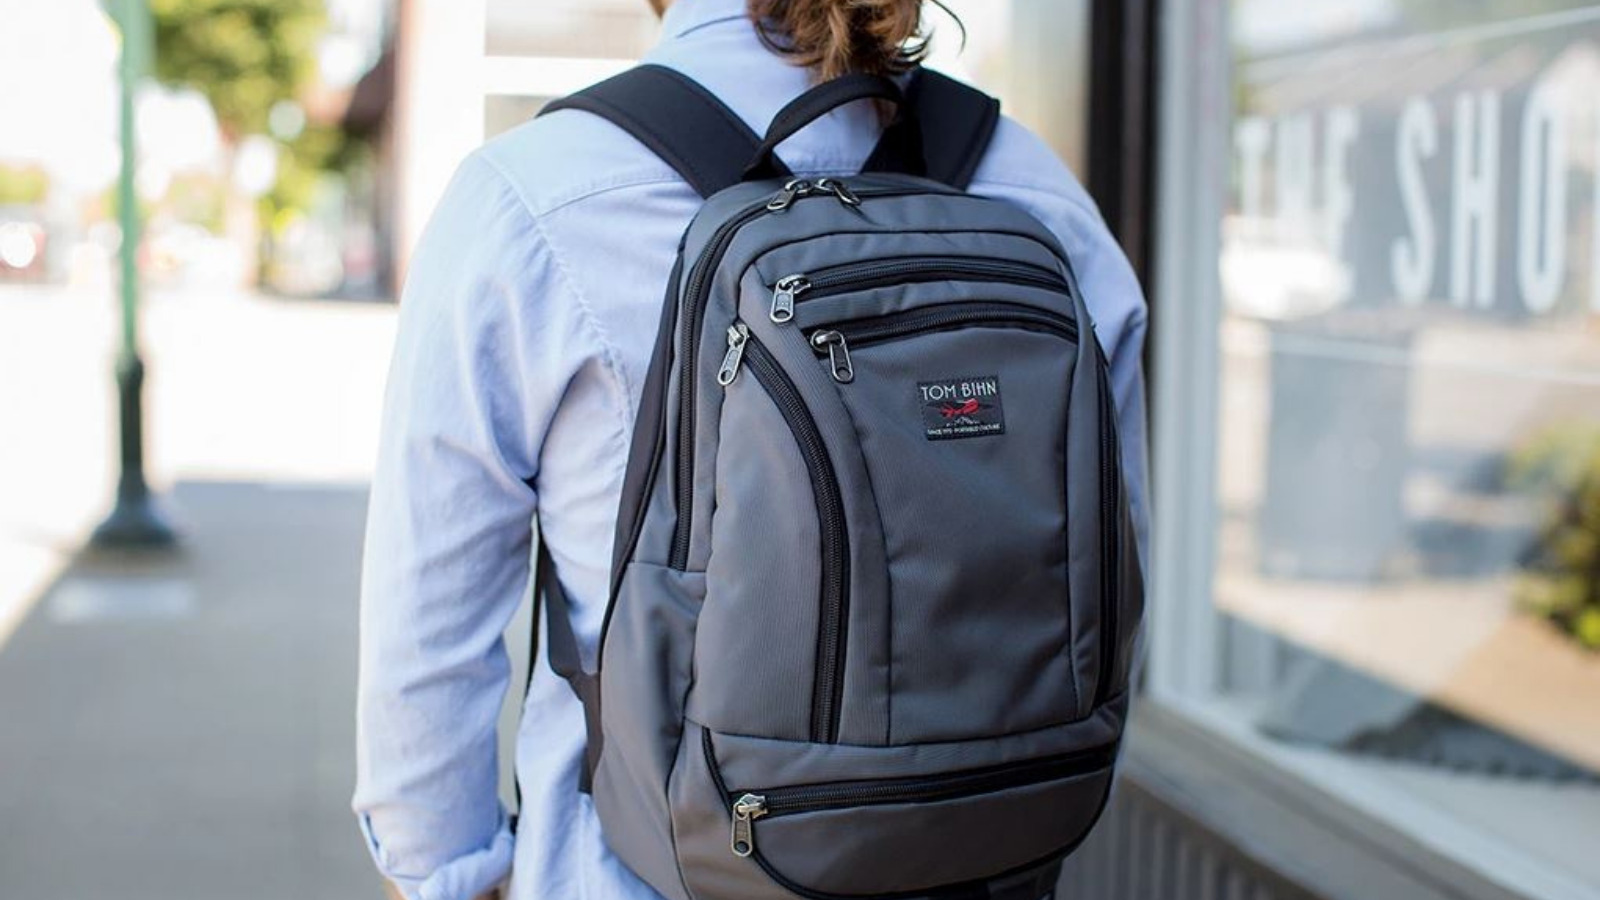 Tom Bihn Synapse 19 review: The Tom Bihn Synapse19 backpack on a male model